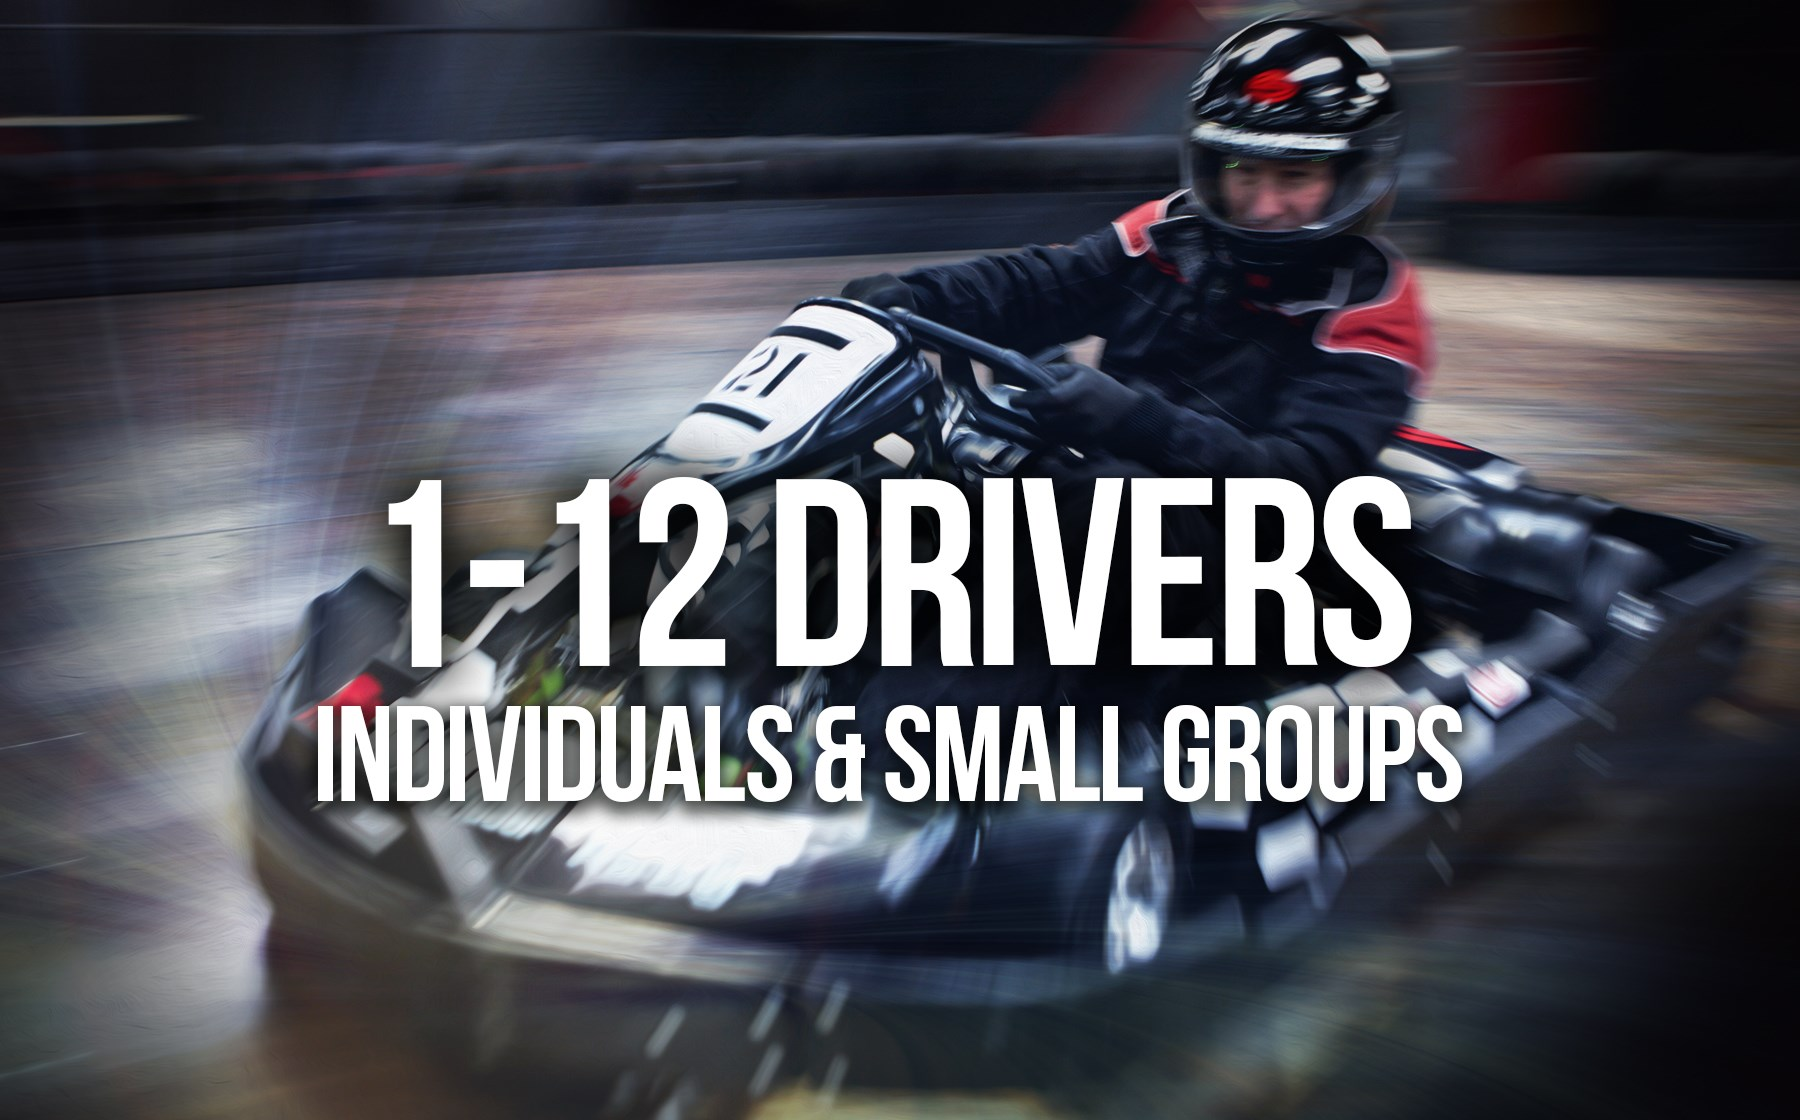 Indoor Go Karting  Events Gosport - Individuals and Small Groups